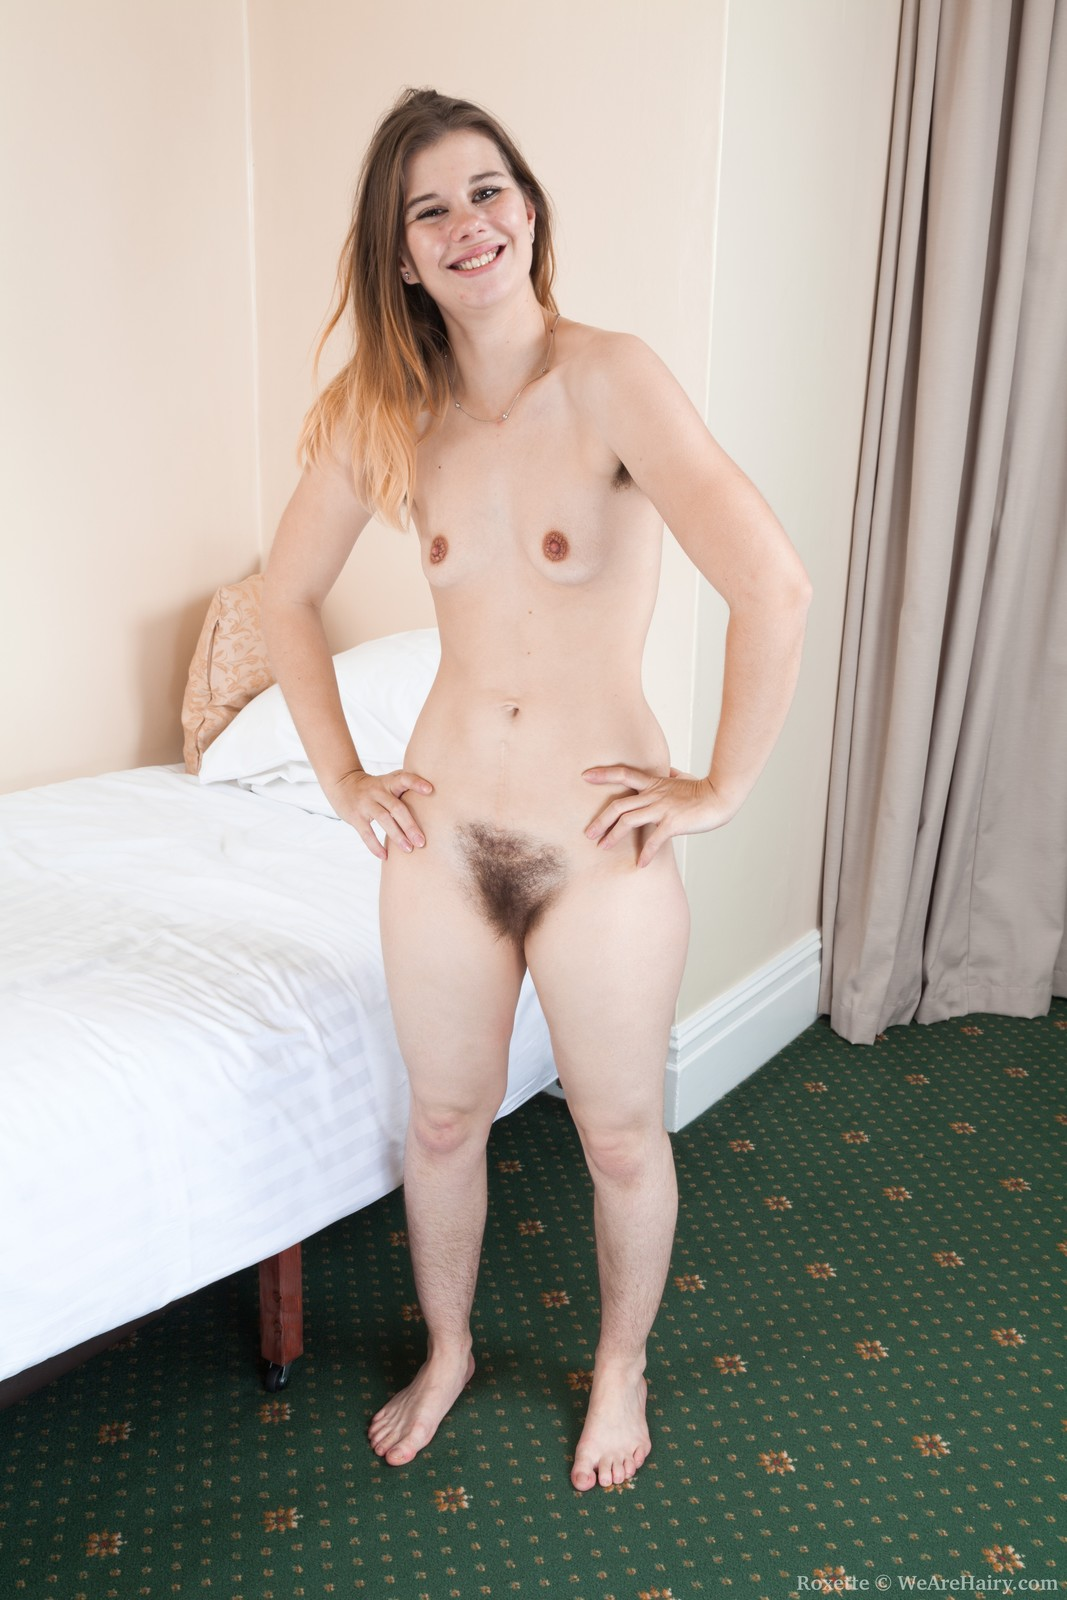 roxette-is-playing-around-in-her-bedroom-and-stroking-her-hairy-pits.-she-strips-nude-and-we-really-can-enjoy-her-hairy-pussy-and-34b-breasts.-she-lays-back-and-is-quite-a-beautiful-hairy-body.12.jpg